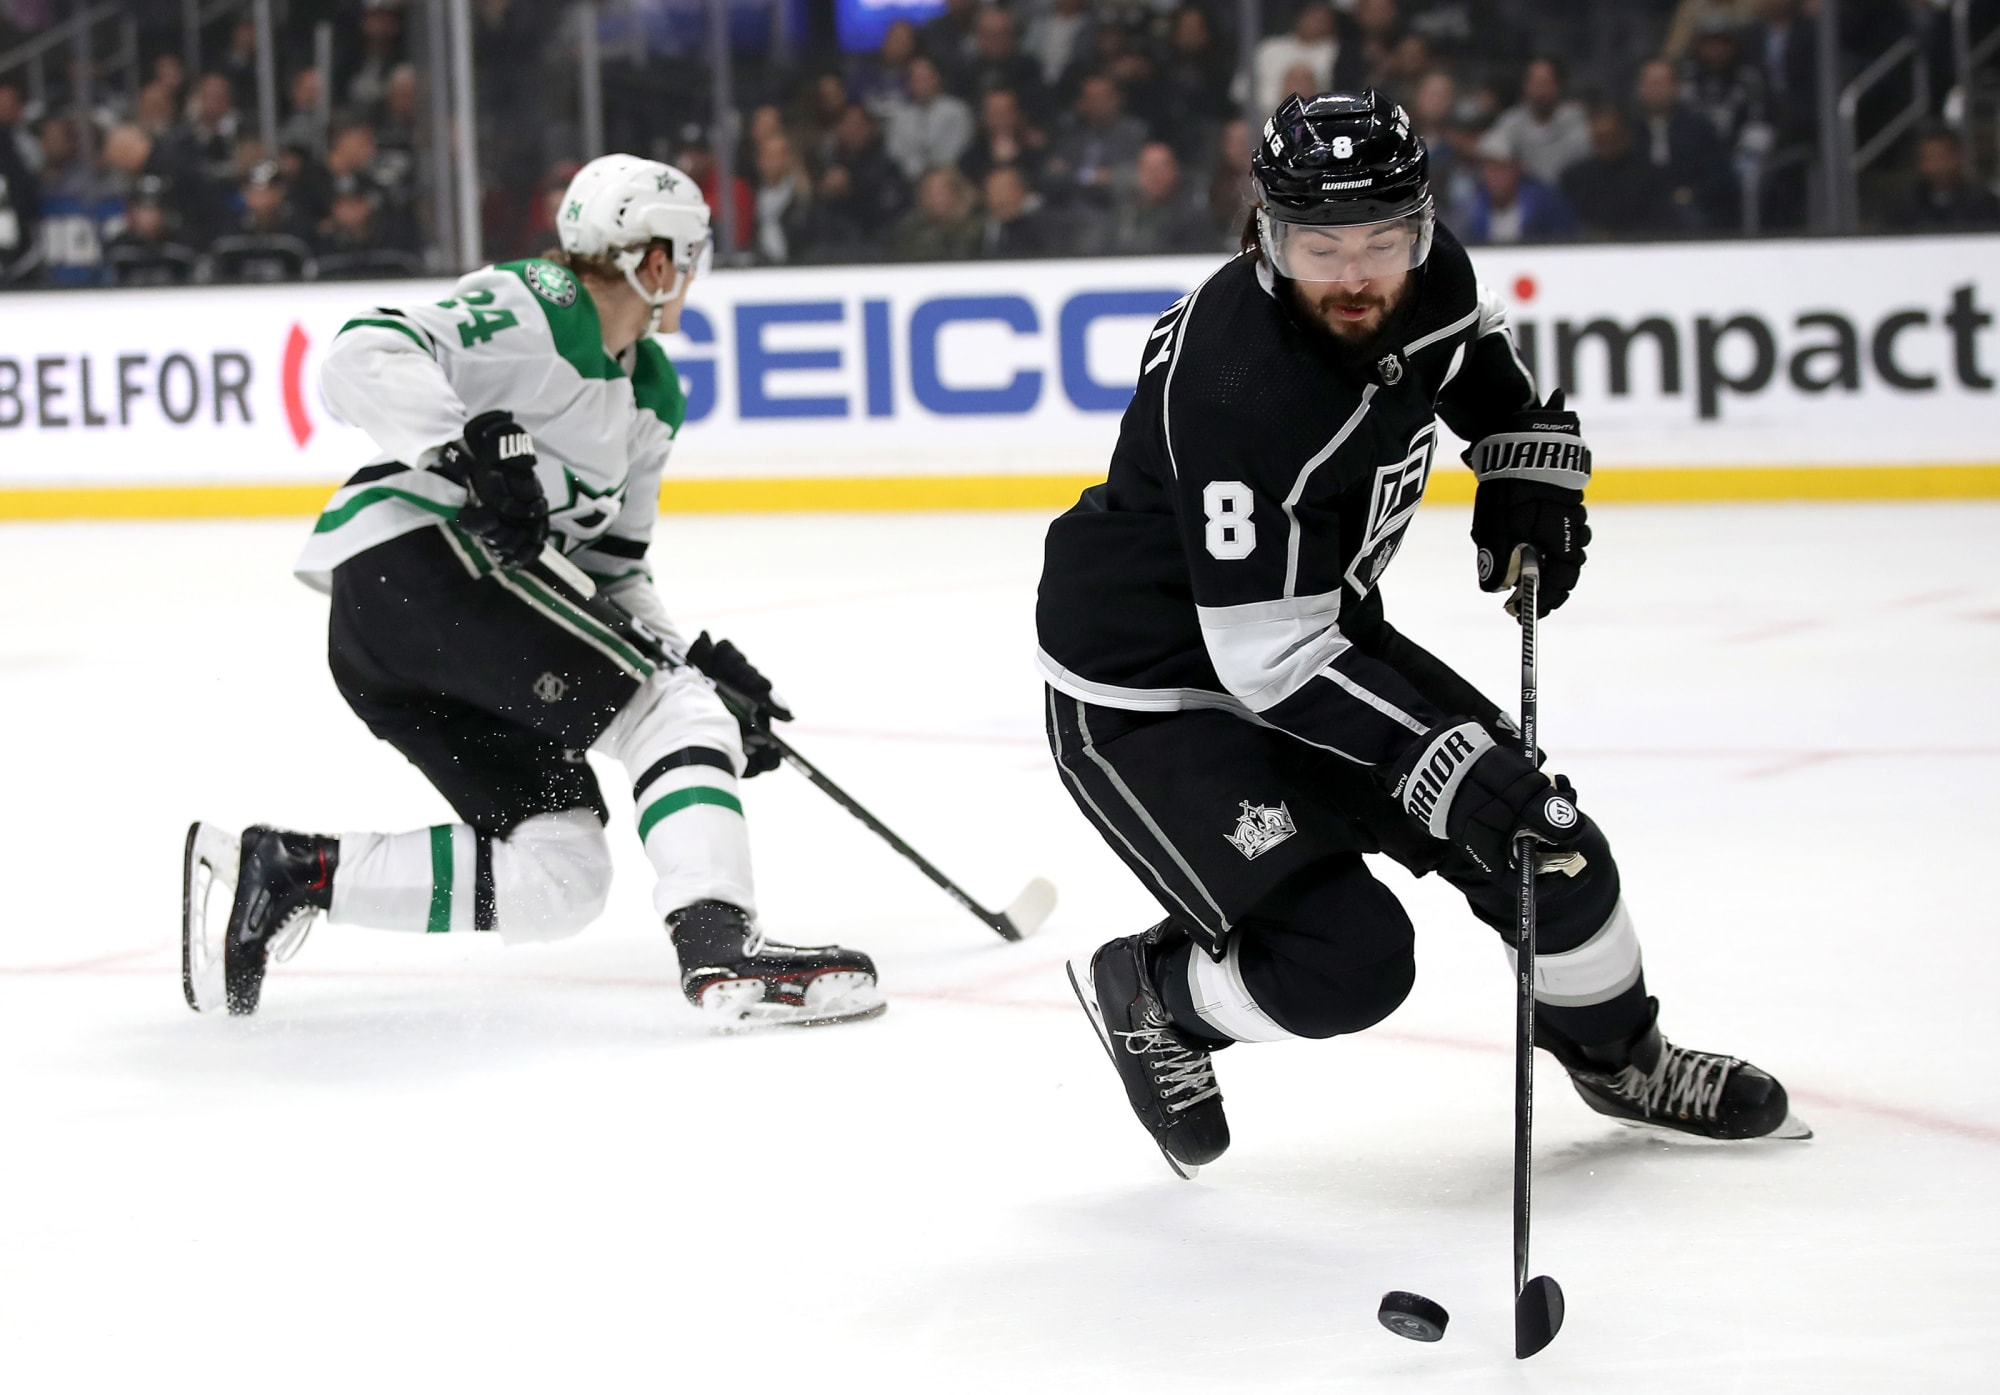 LA Kings: Why Drew Doughty will have a bounceback year